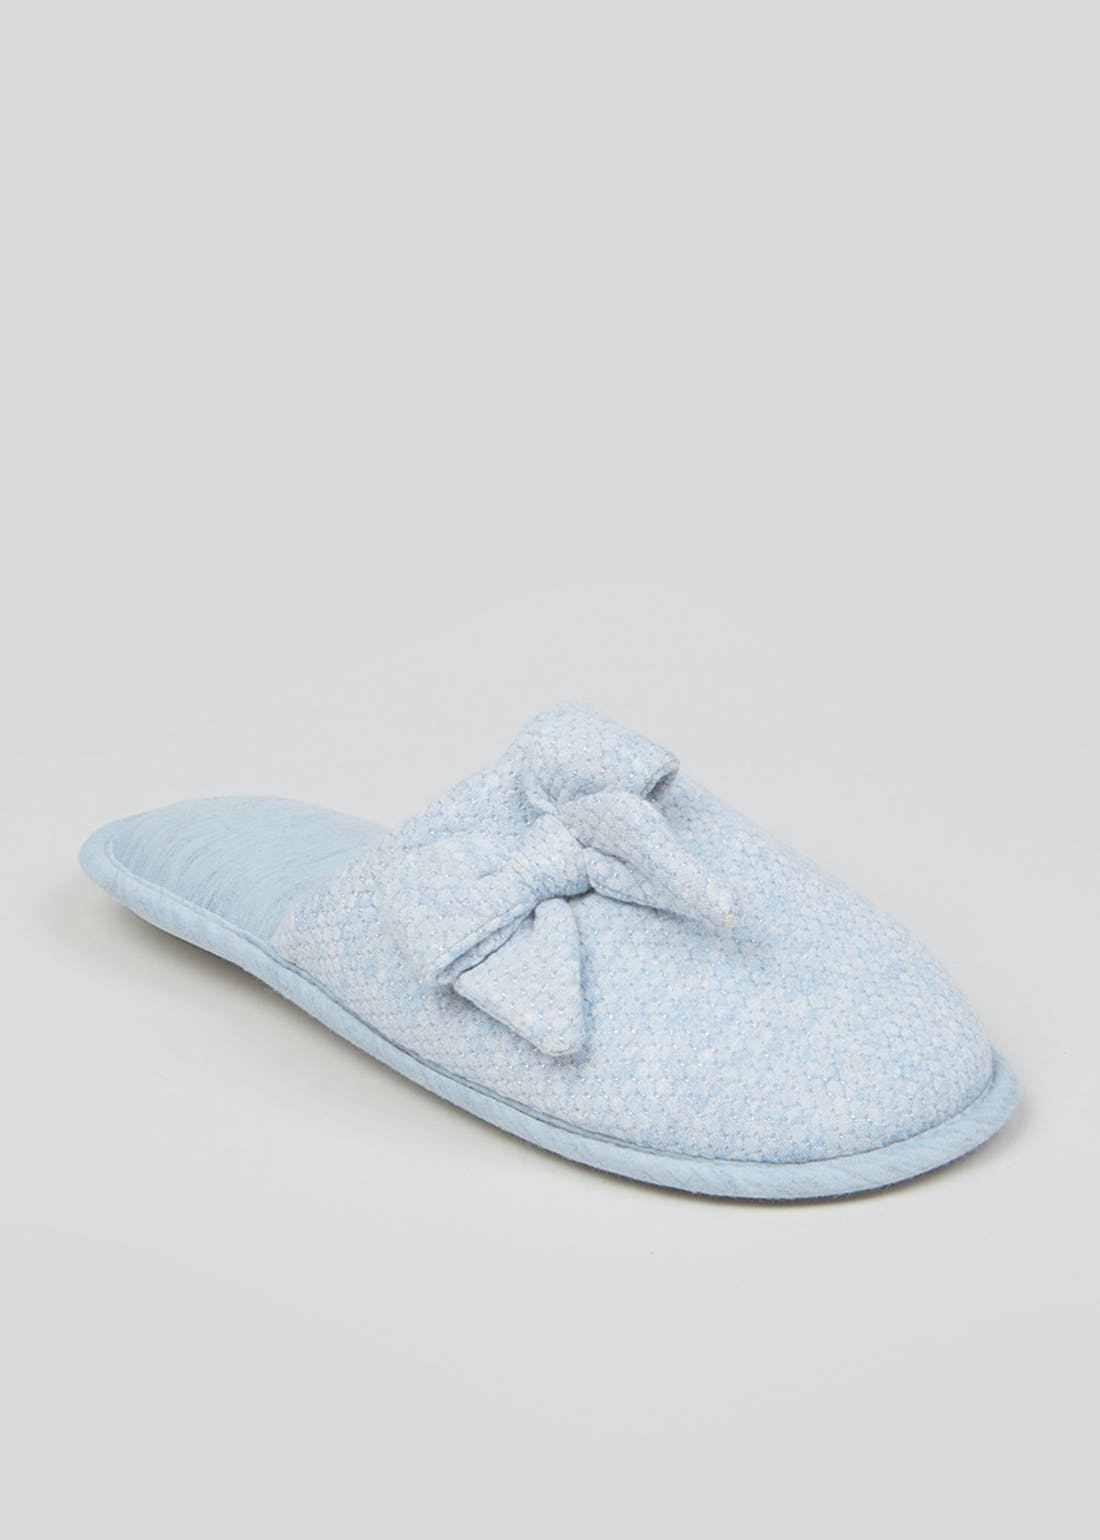 Blue Bow Mule Slippers